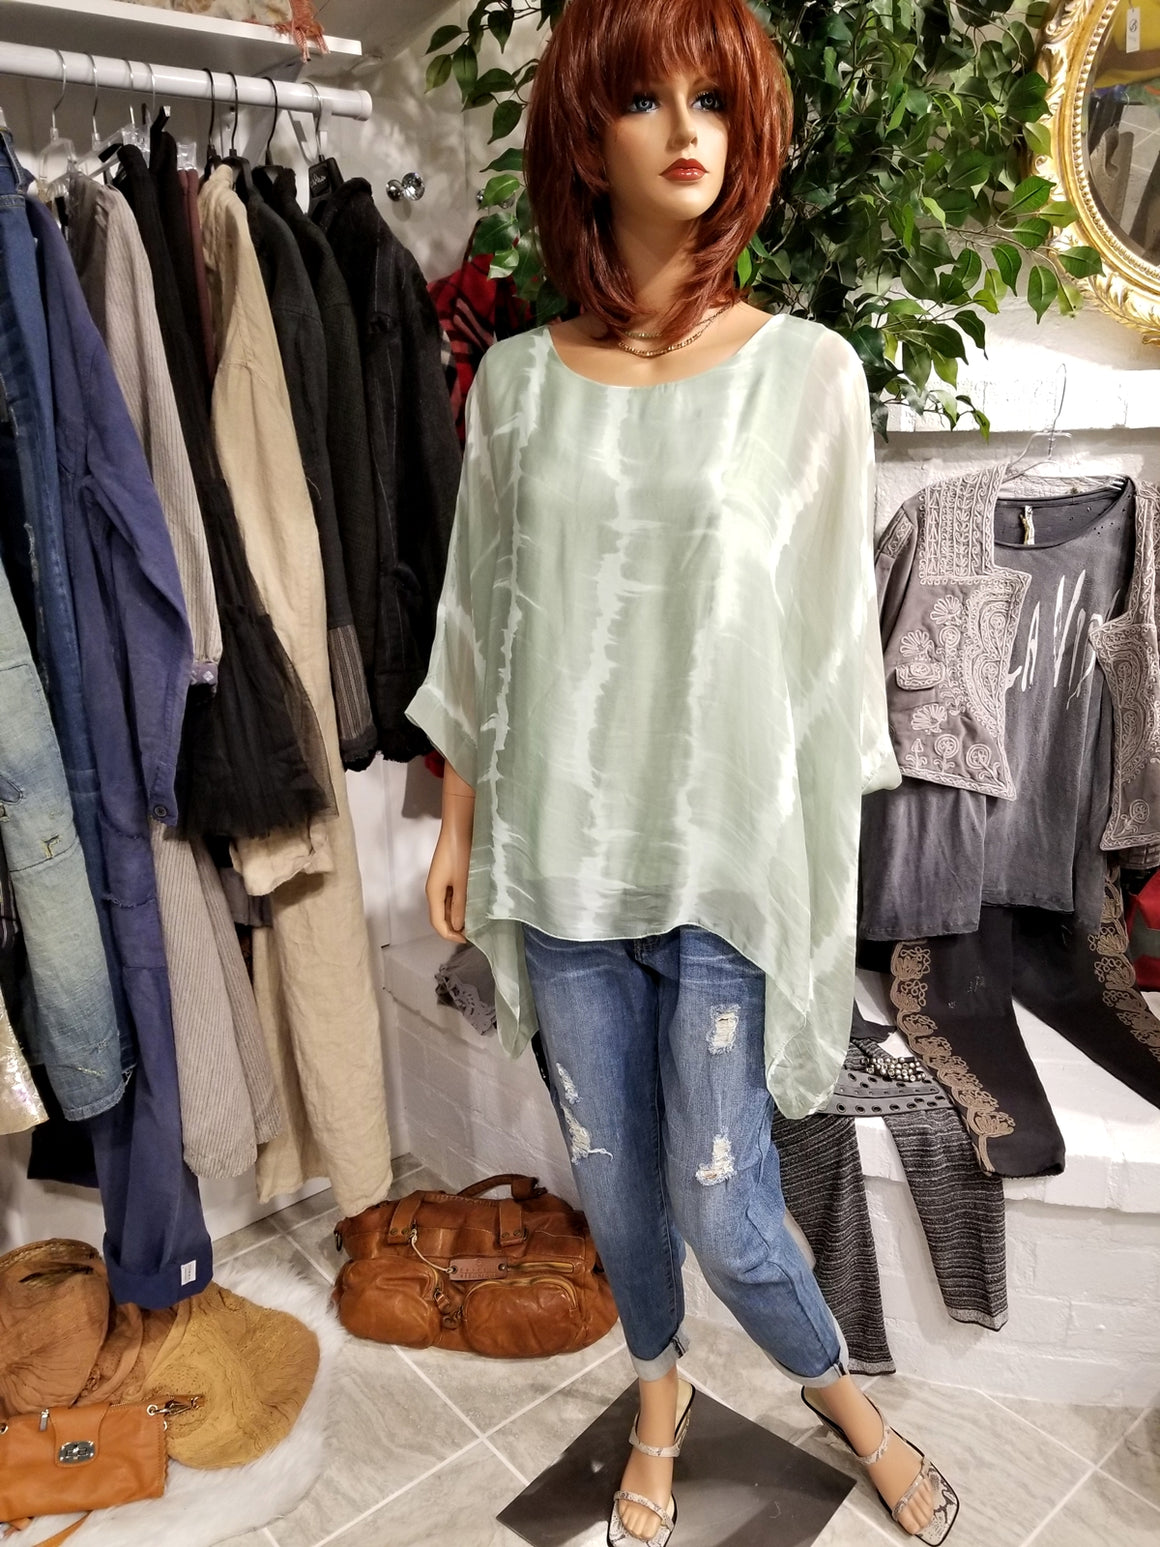 Italian Silk Top with Tie Dye Print - Light Green